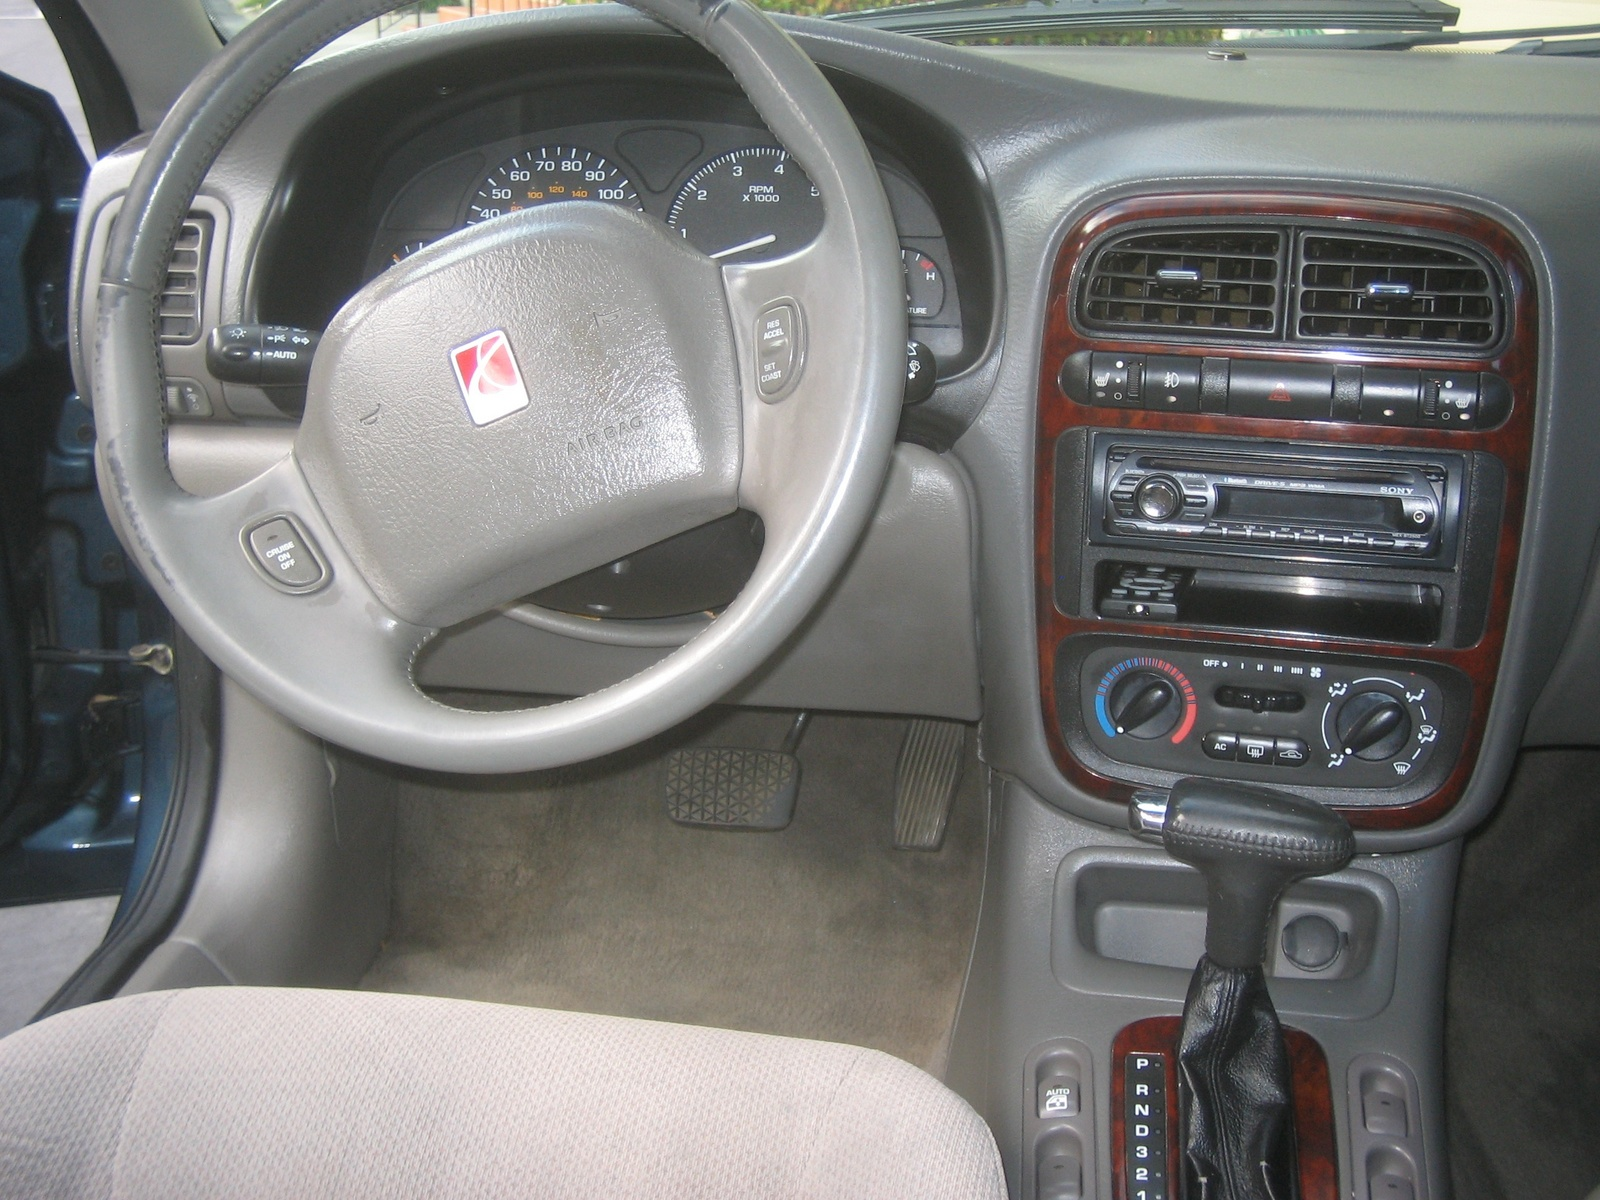 05 7 series bmw part 111 picture of 2002 saturn l series 4 dr l300 sedan interior 2002 saturn l series 4 dr l300 sedan pic 3358428463868061235 vanachro Images